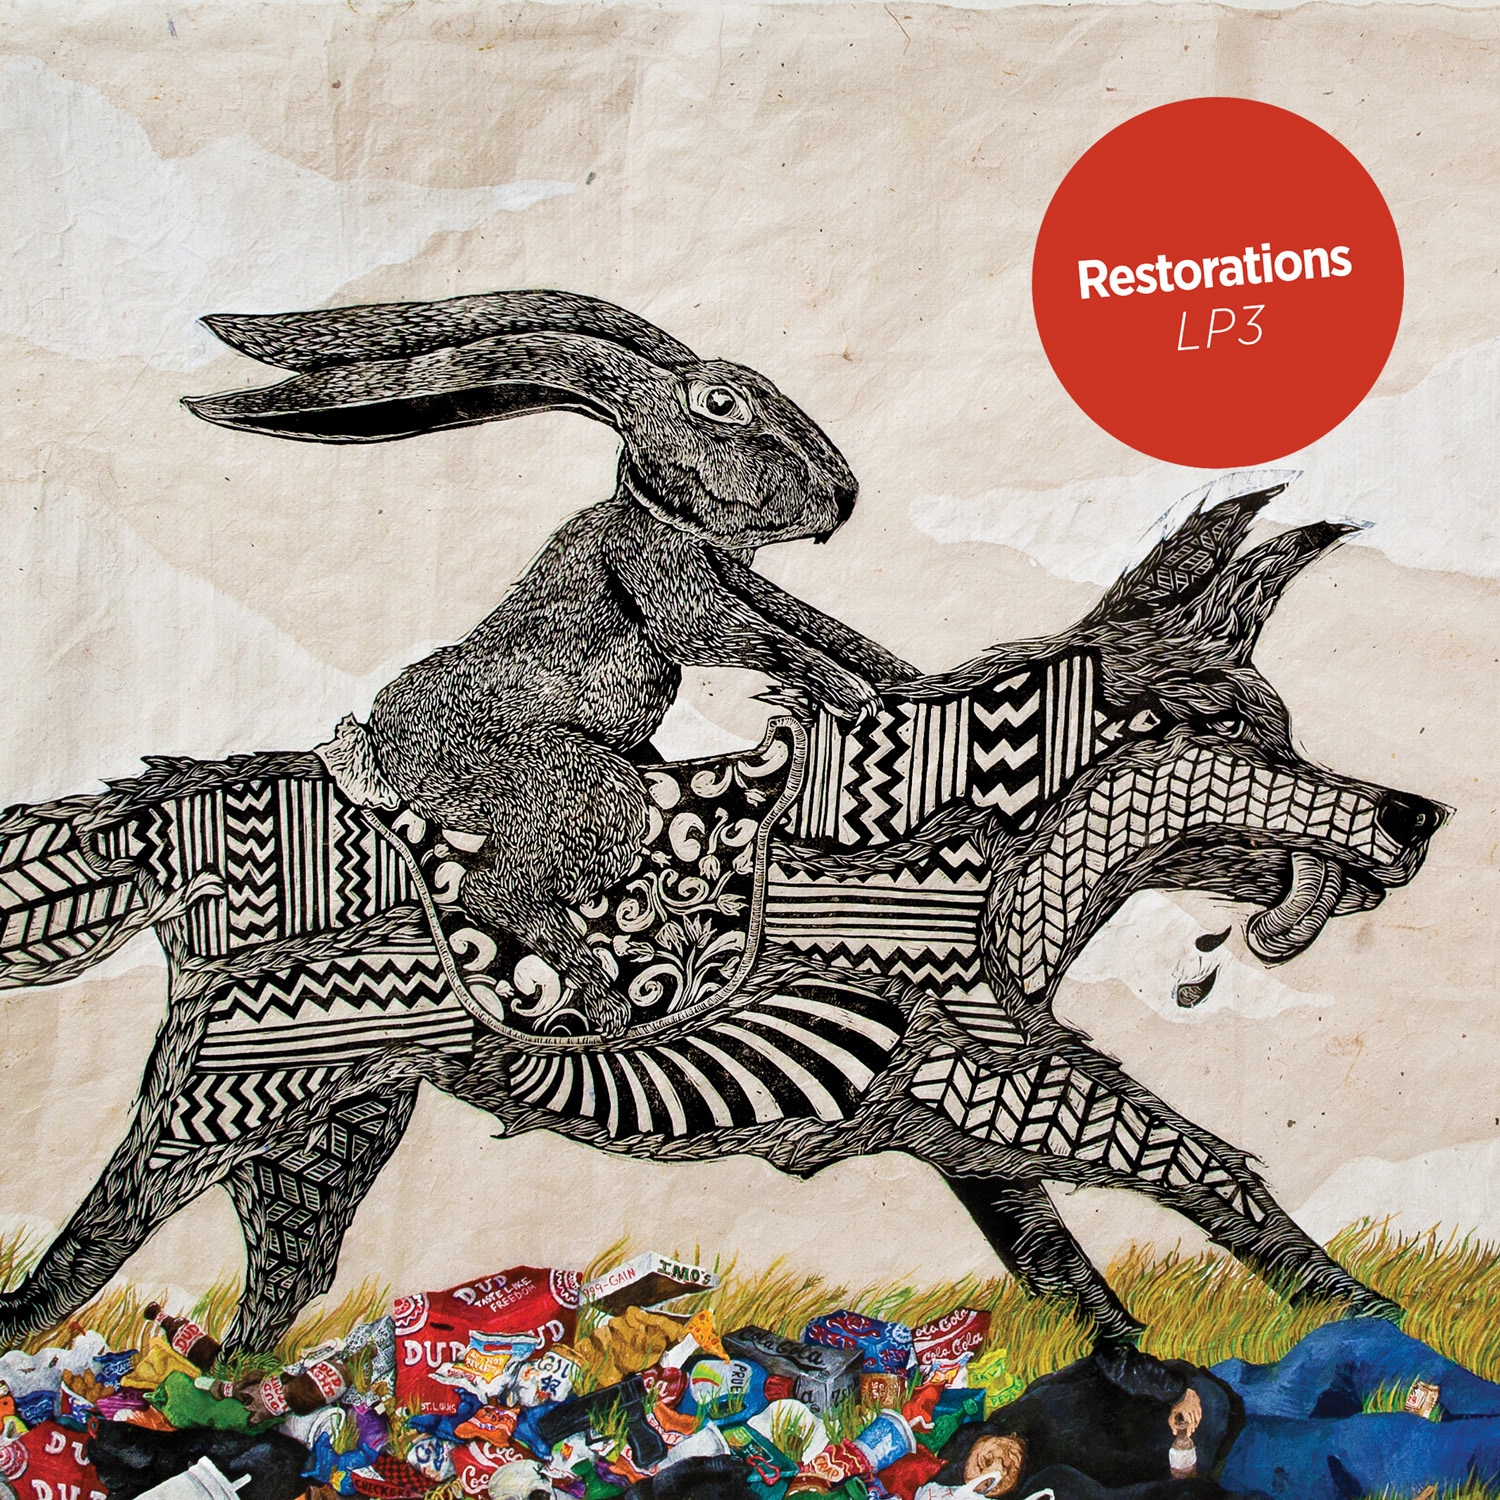 Restorations - LP3 Review 14